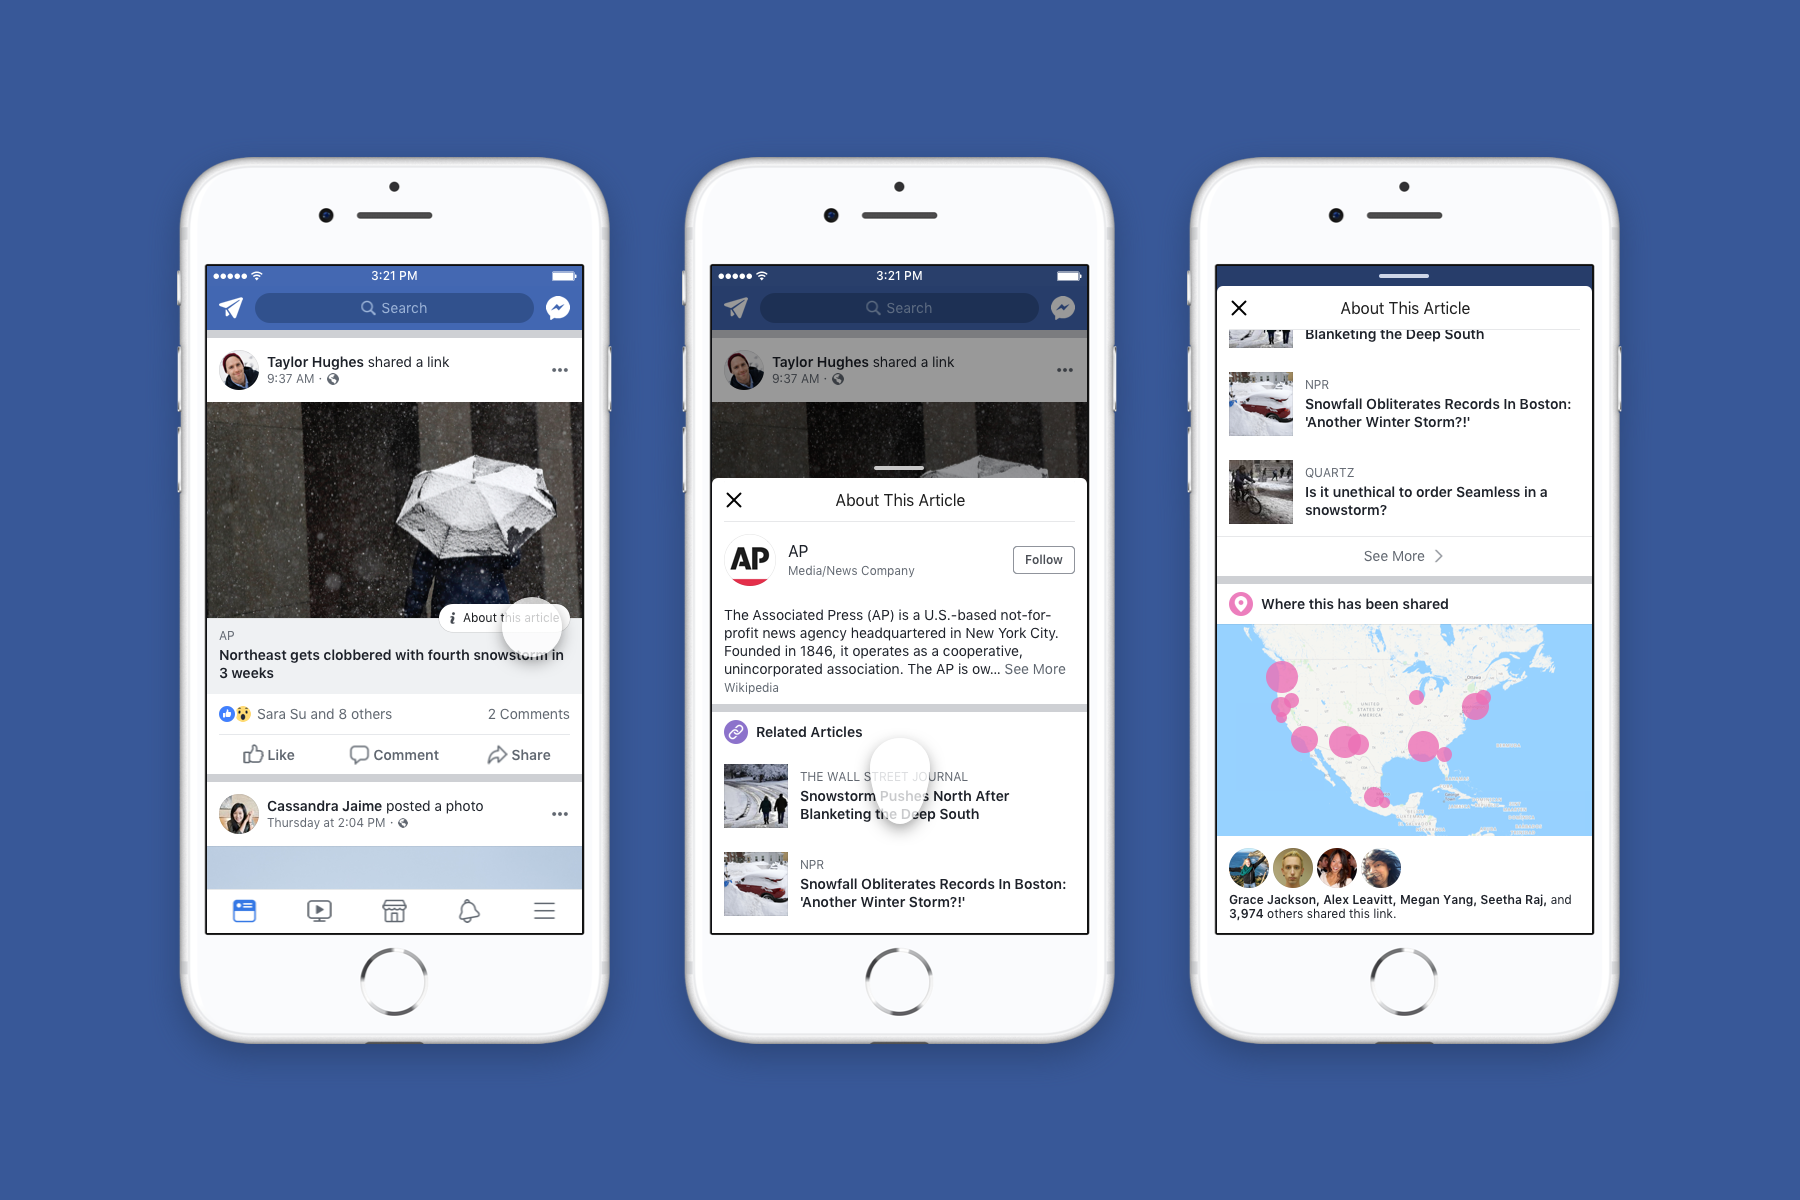 cover-image-1  Facebook Is Rolling out New Background Information Tools for News Feed Content cover image 1